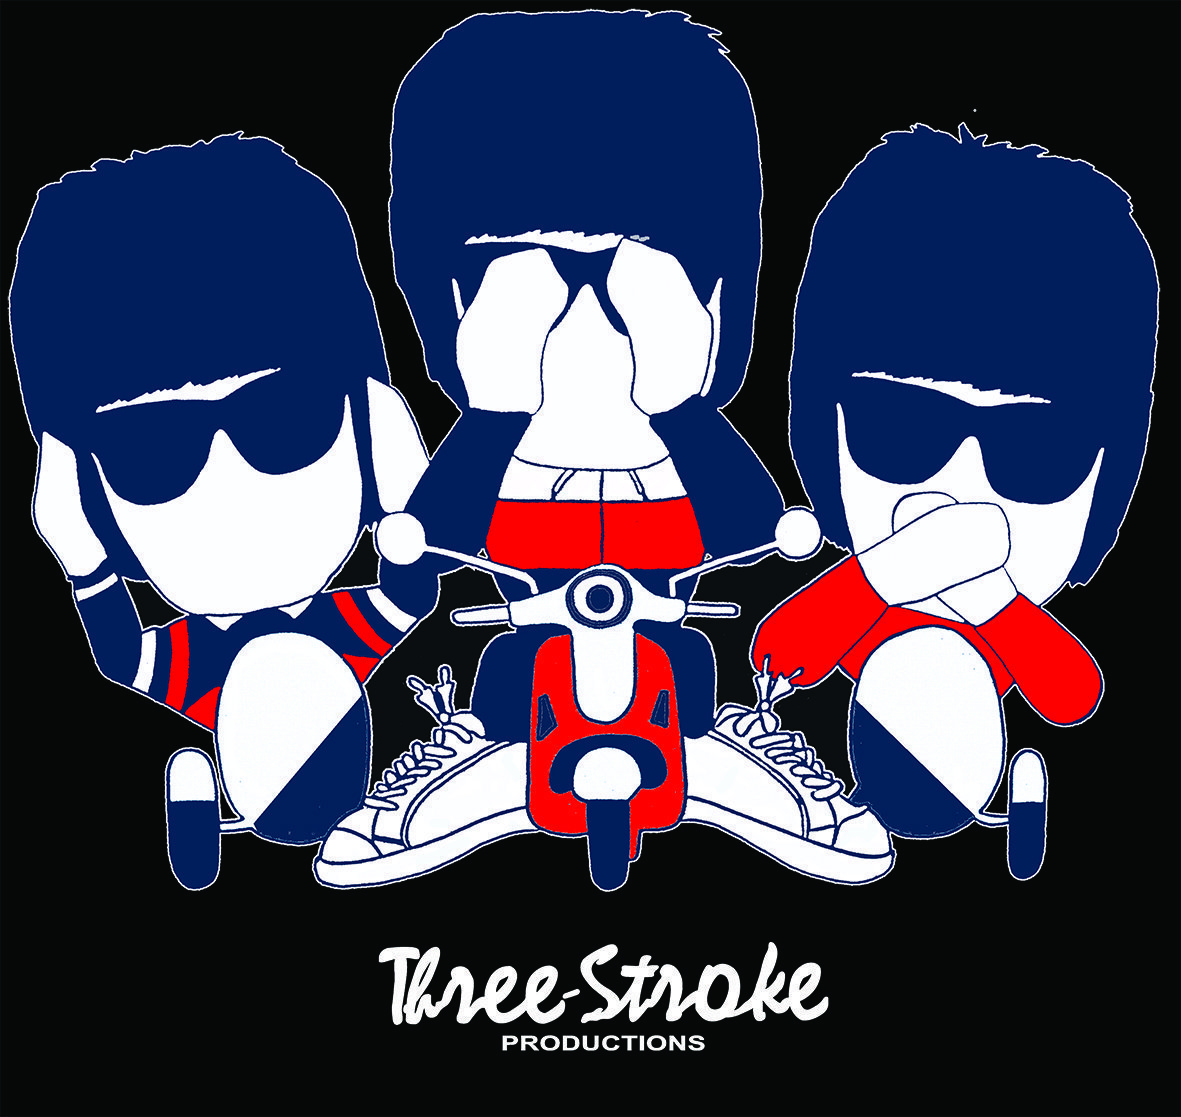 three casuals t shirts by a guy called called minty for three stroke productions